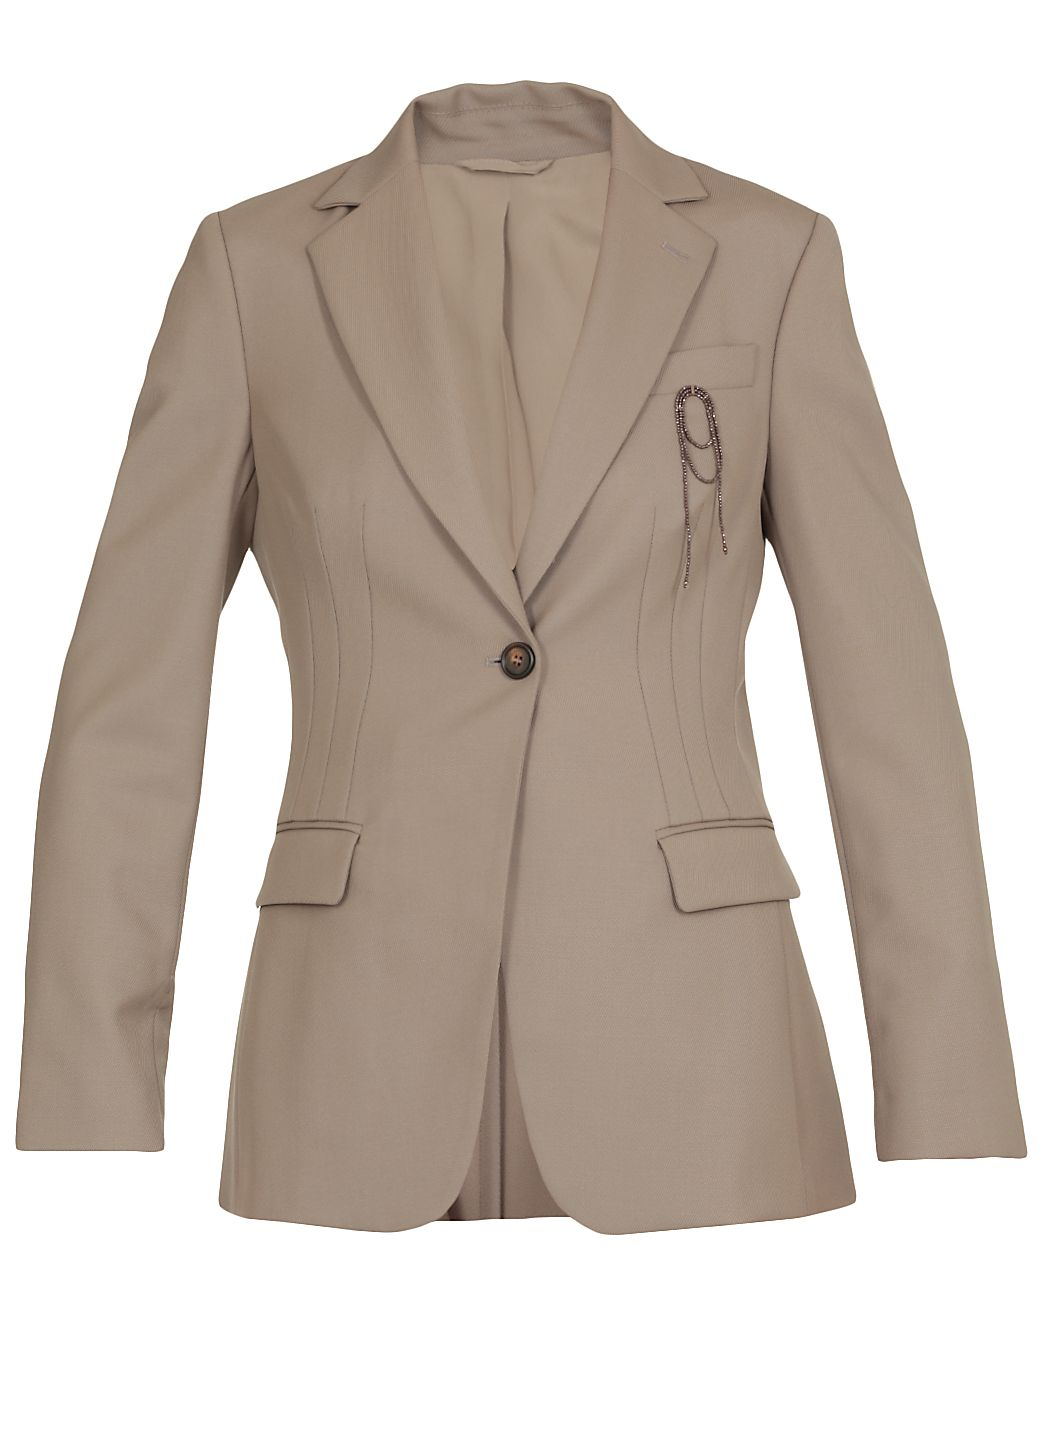 Hip-length jacket with brooch